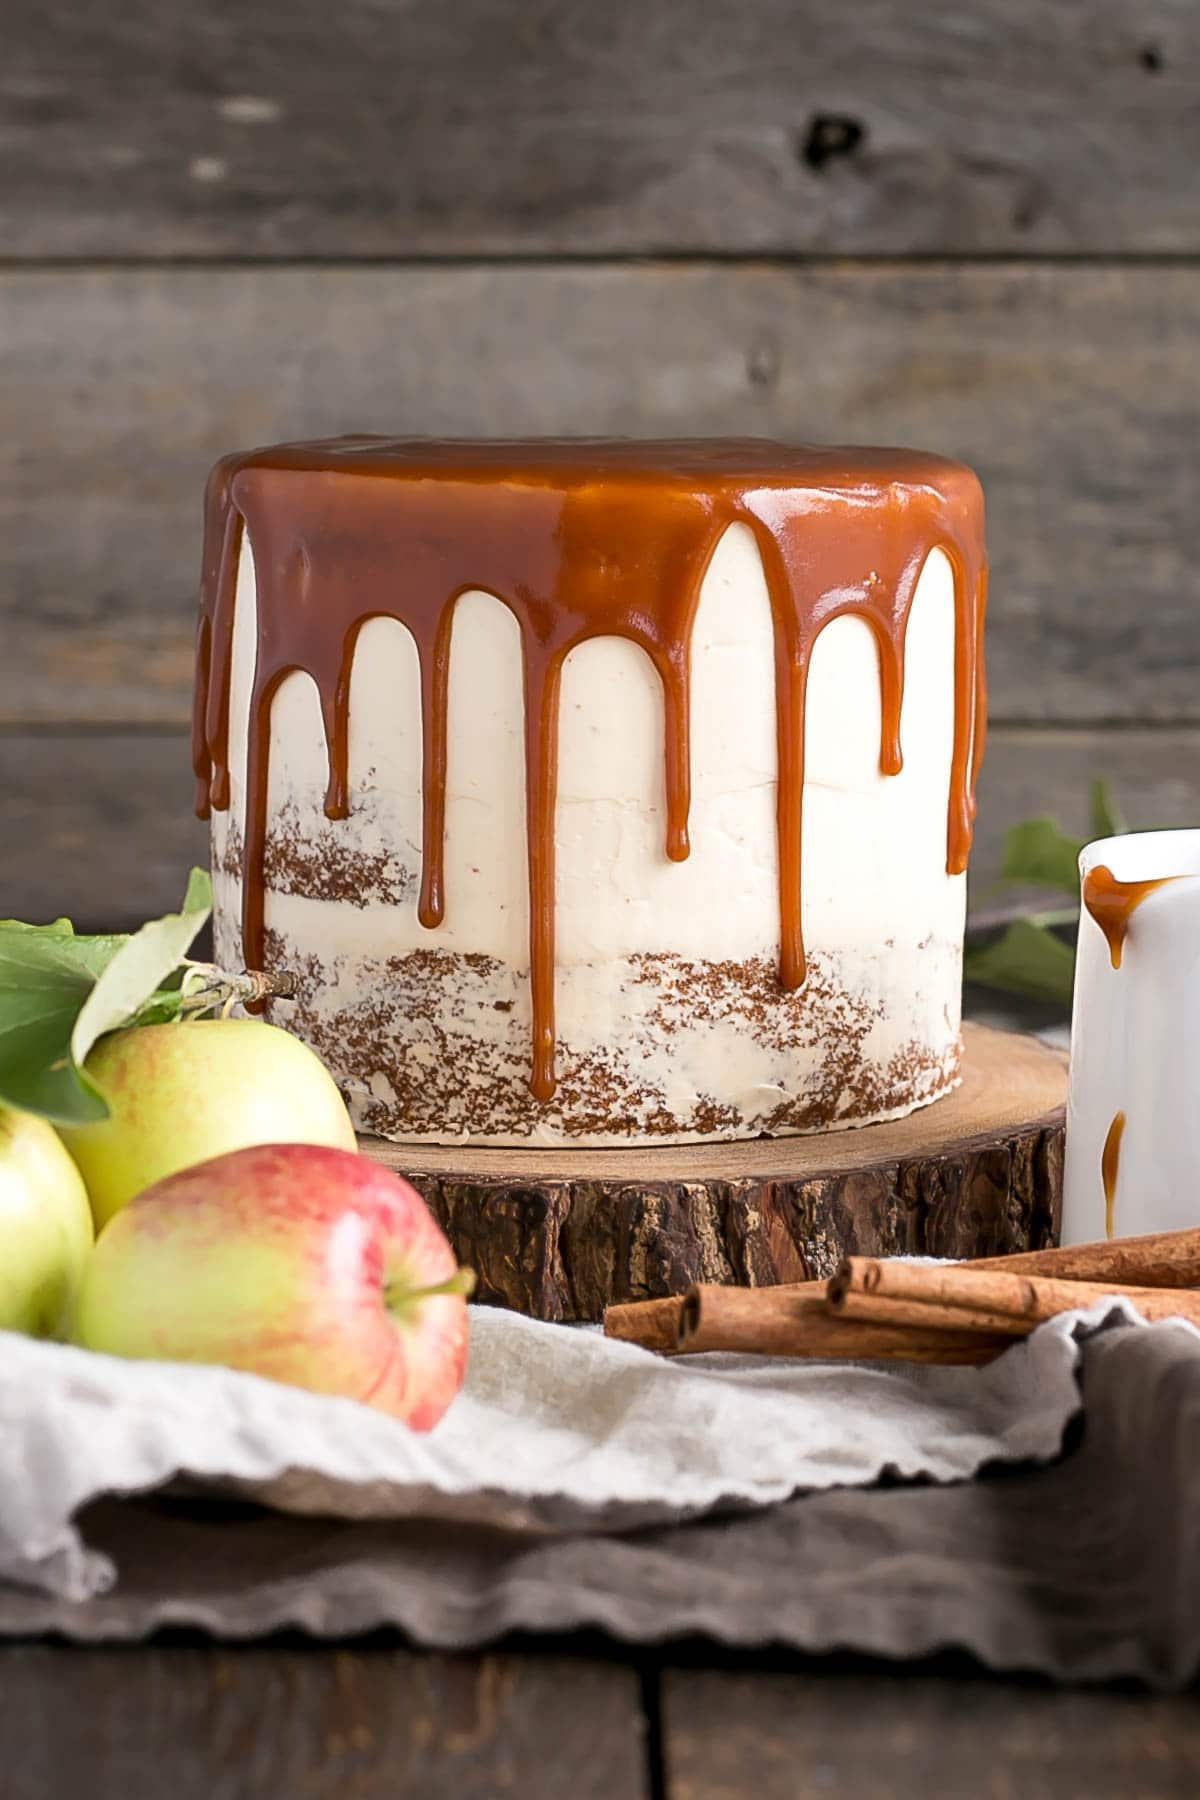 Cake with a caramel drip on a rustic cake stand.